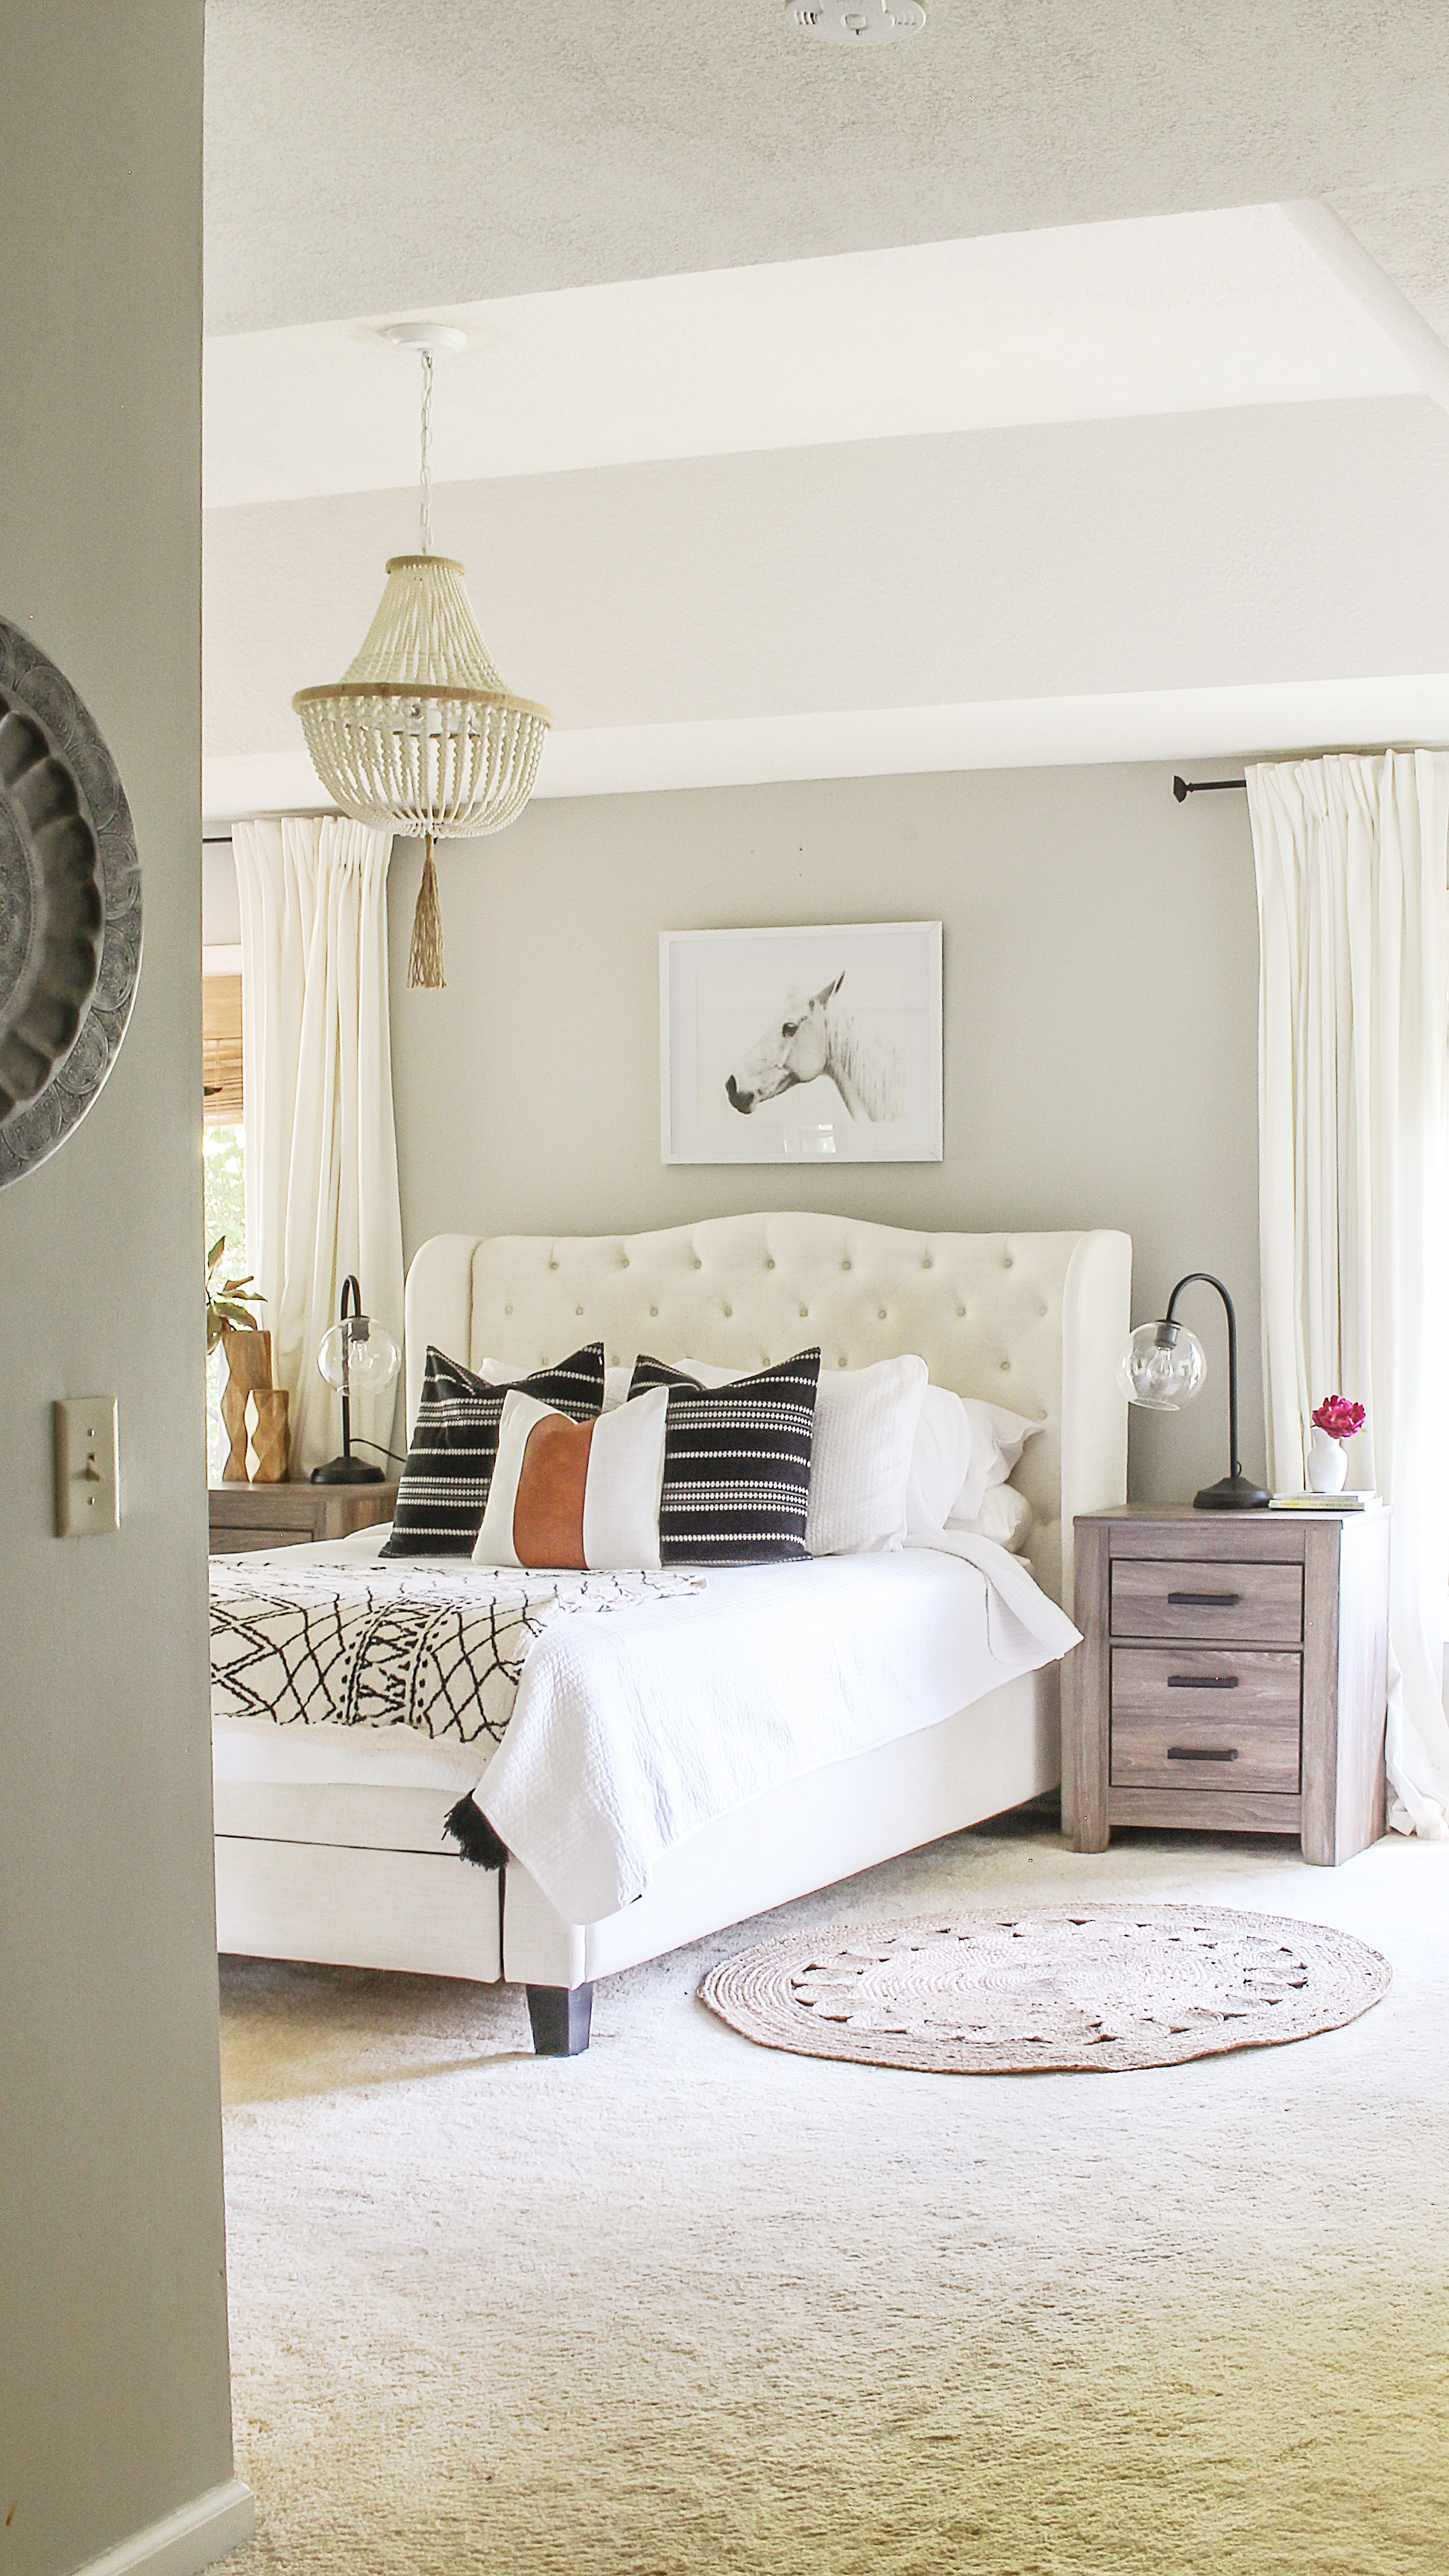 47 Inspiring Modern Farmhouse Bedroom Decor Ideas - TREND4HOMY